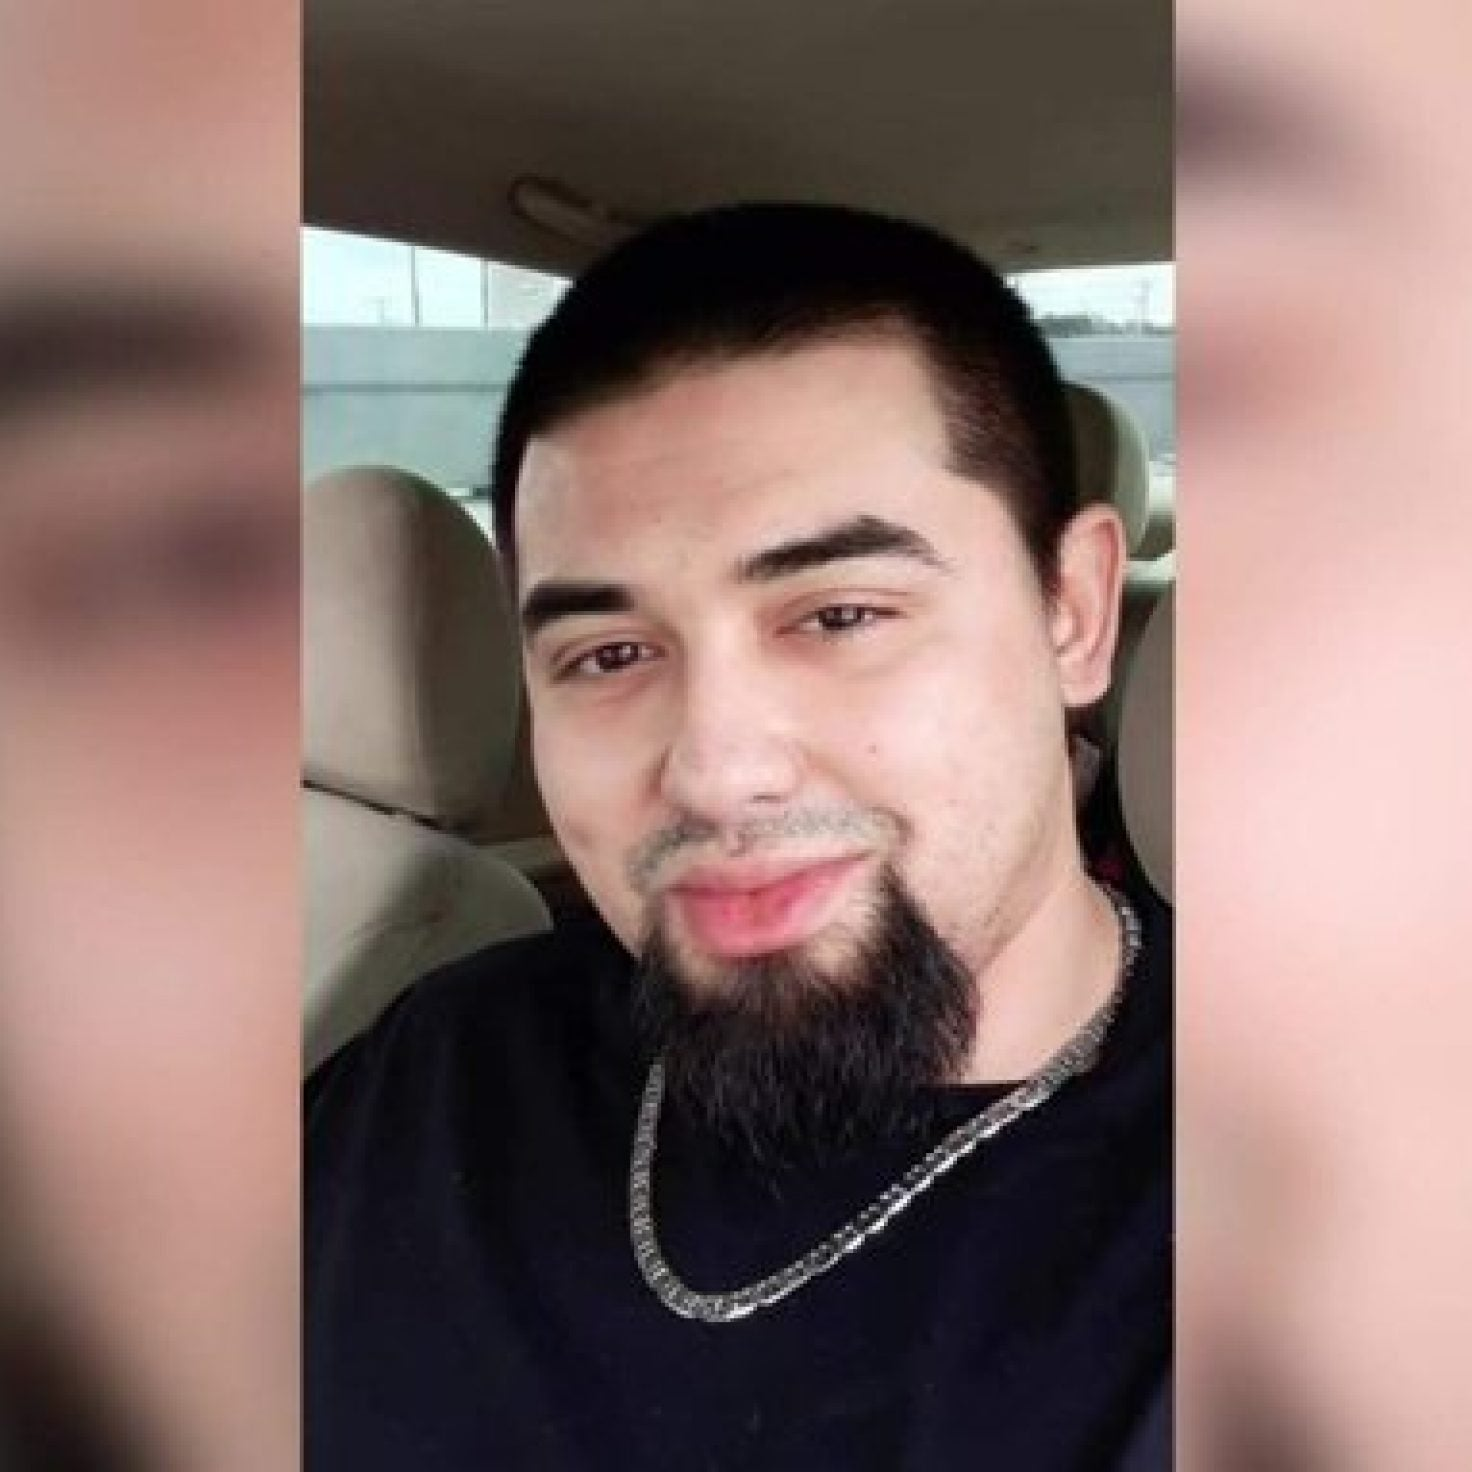 4 Houston Cops Who Shot And Killed Nicolas Chavez Fired